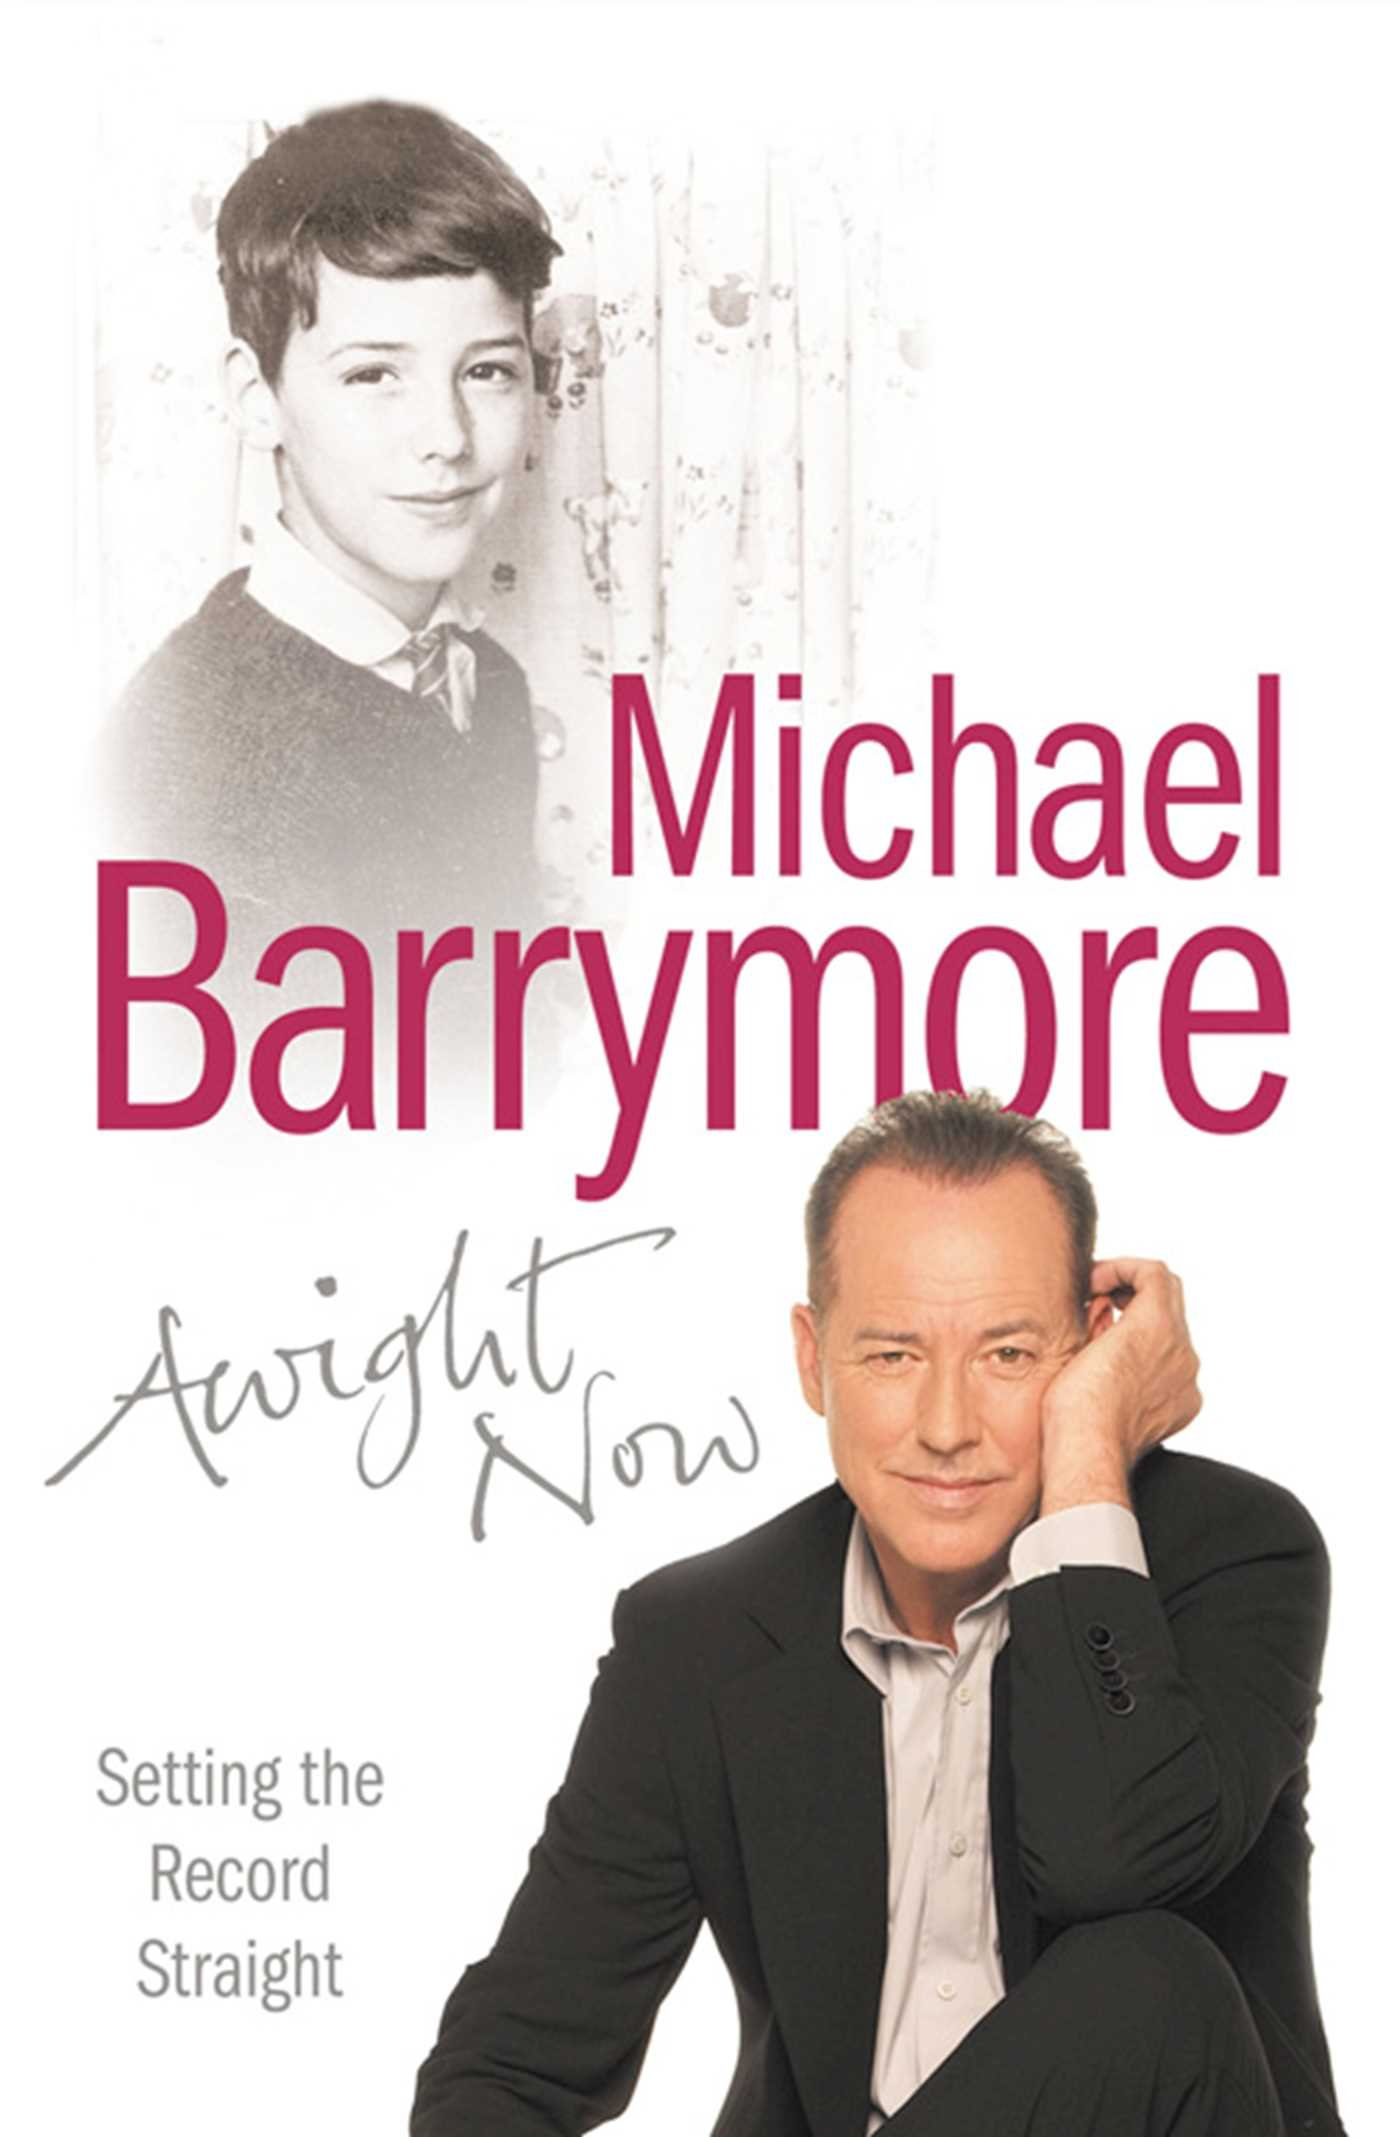 Michael Barrymore (born 1952)